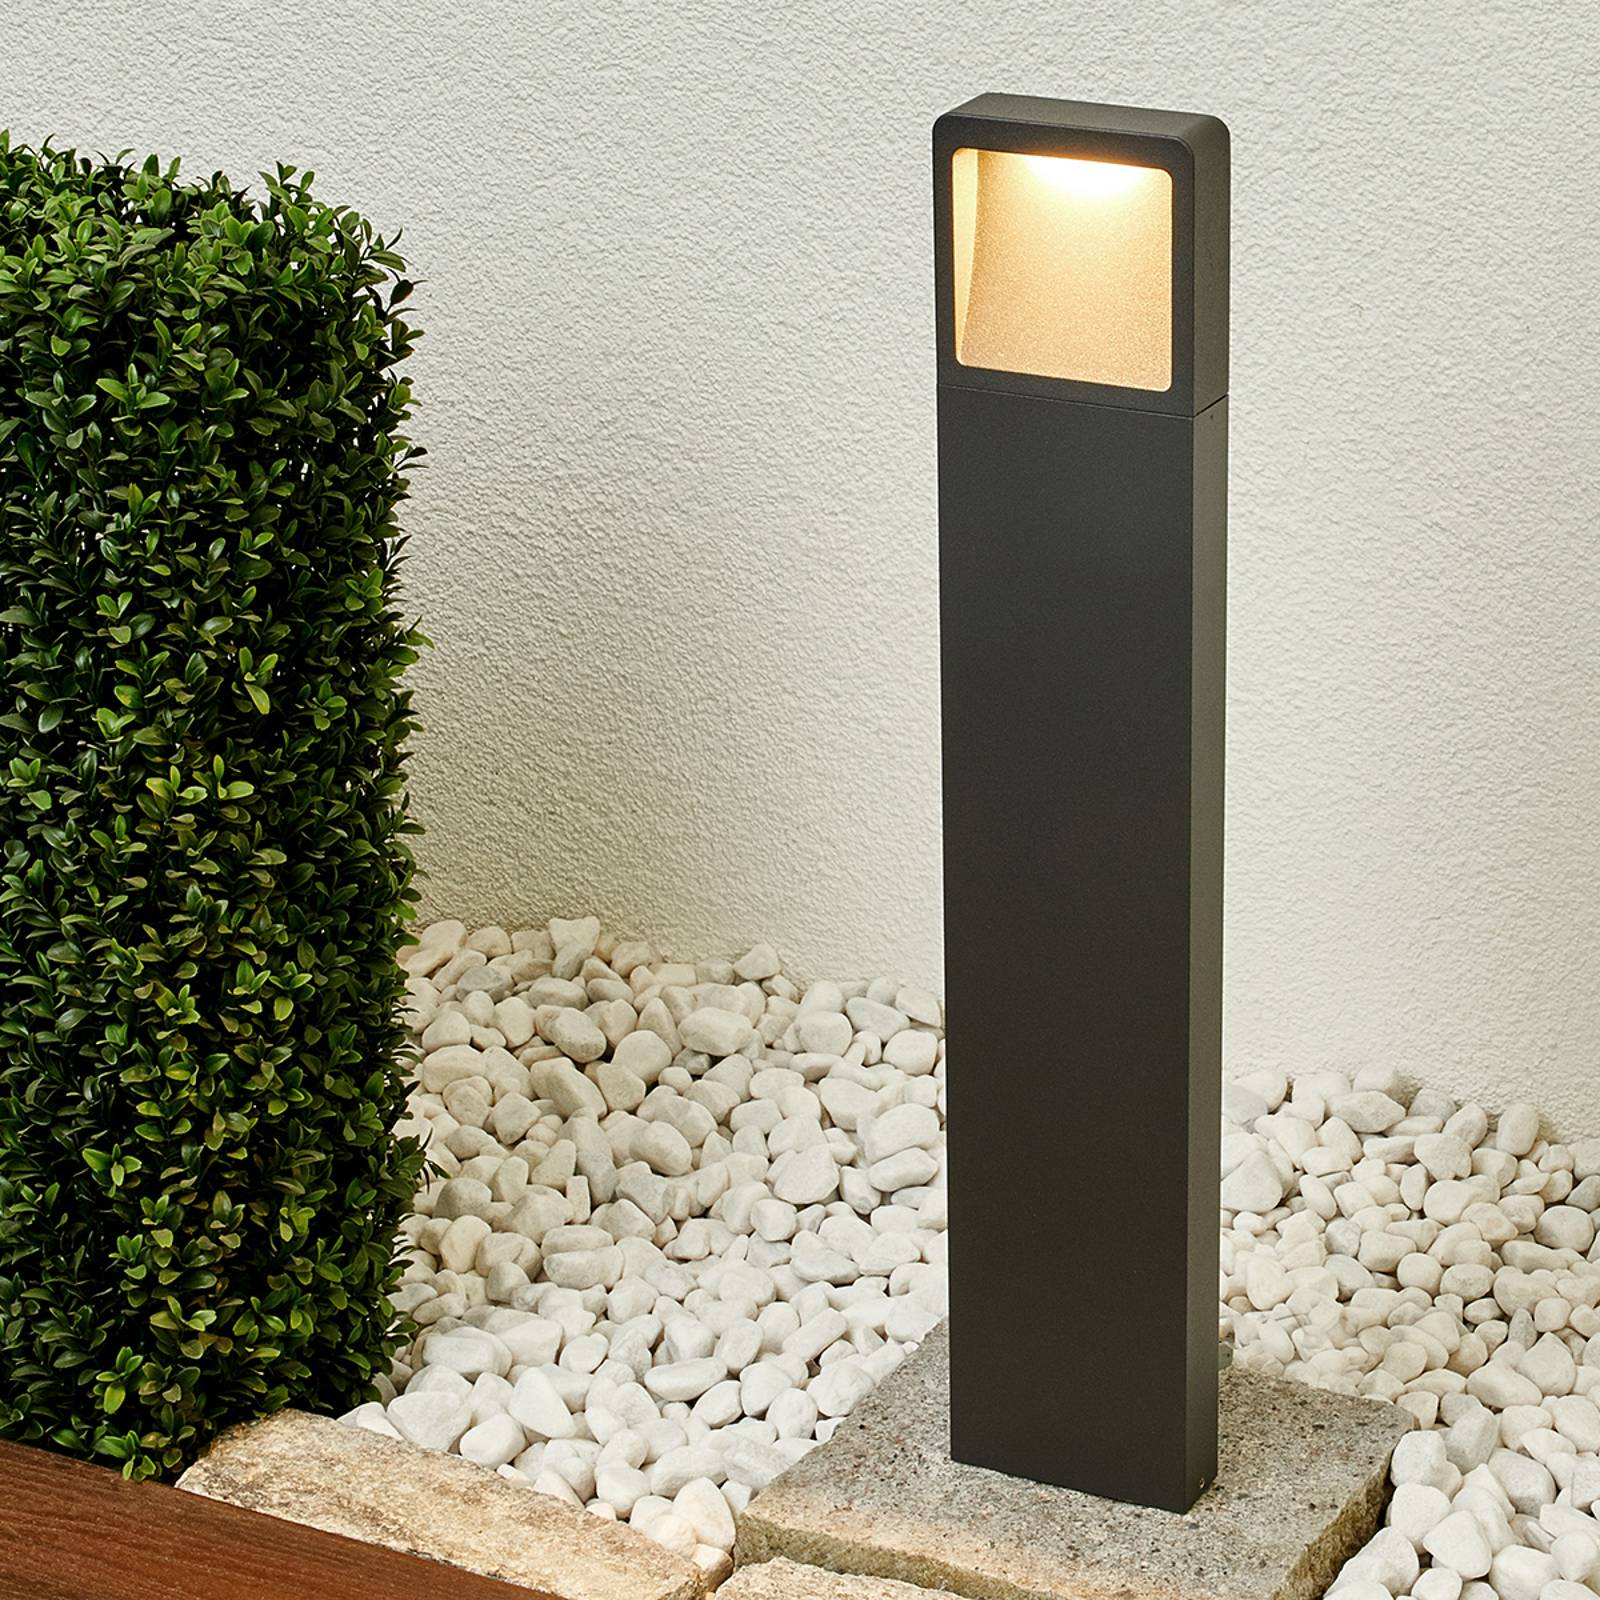 Leya - modern path light with LED from Lampenwelt.com